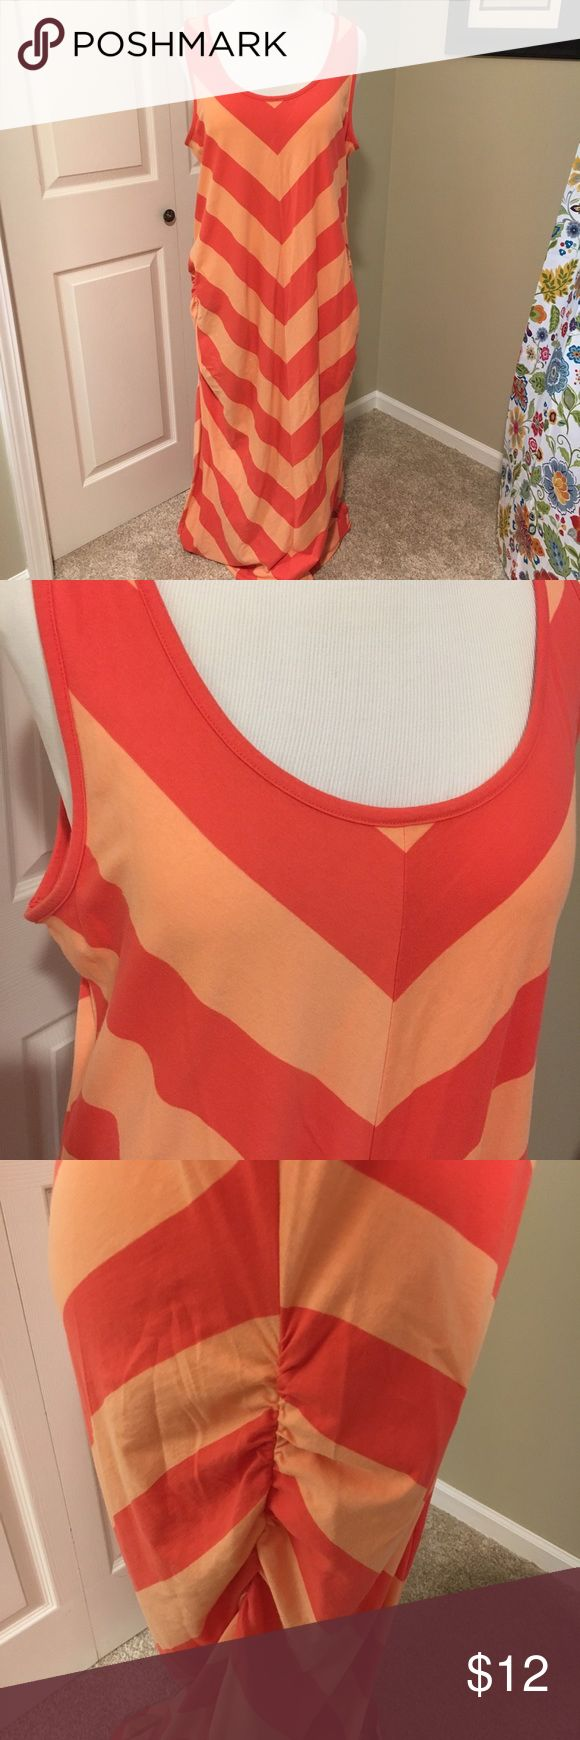 Cute Old Navy tank maxi dress with side details Cute chevron stripe in tangerine and coral. Easy to wear knit tank maxi with side ruching on both sides for additional styling Old Navy Dresses Maxi